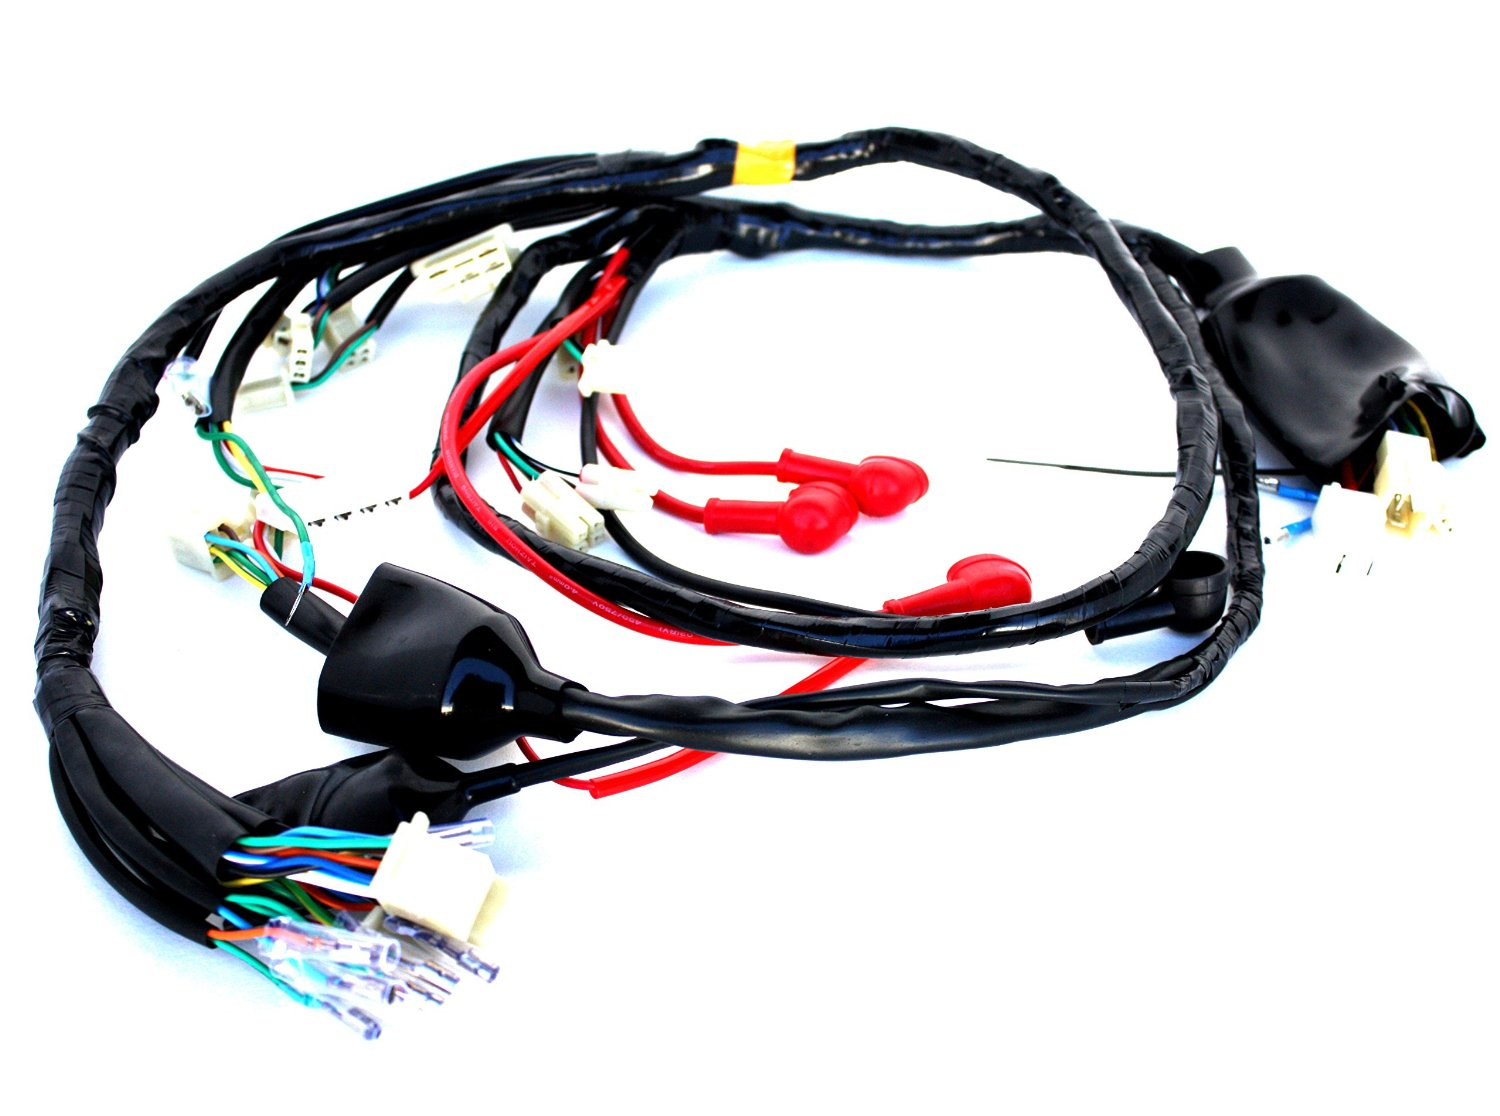 Cheap E Scooter Wiring Find Deals On Line At E200 Razor Diagram Get Quotations Harness 32100 Ky E000